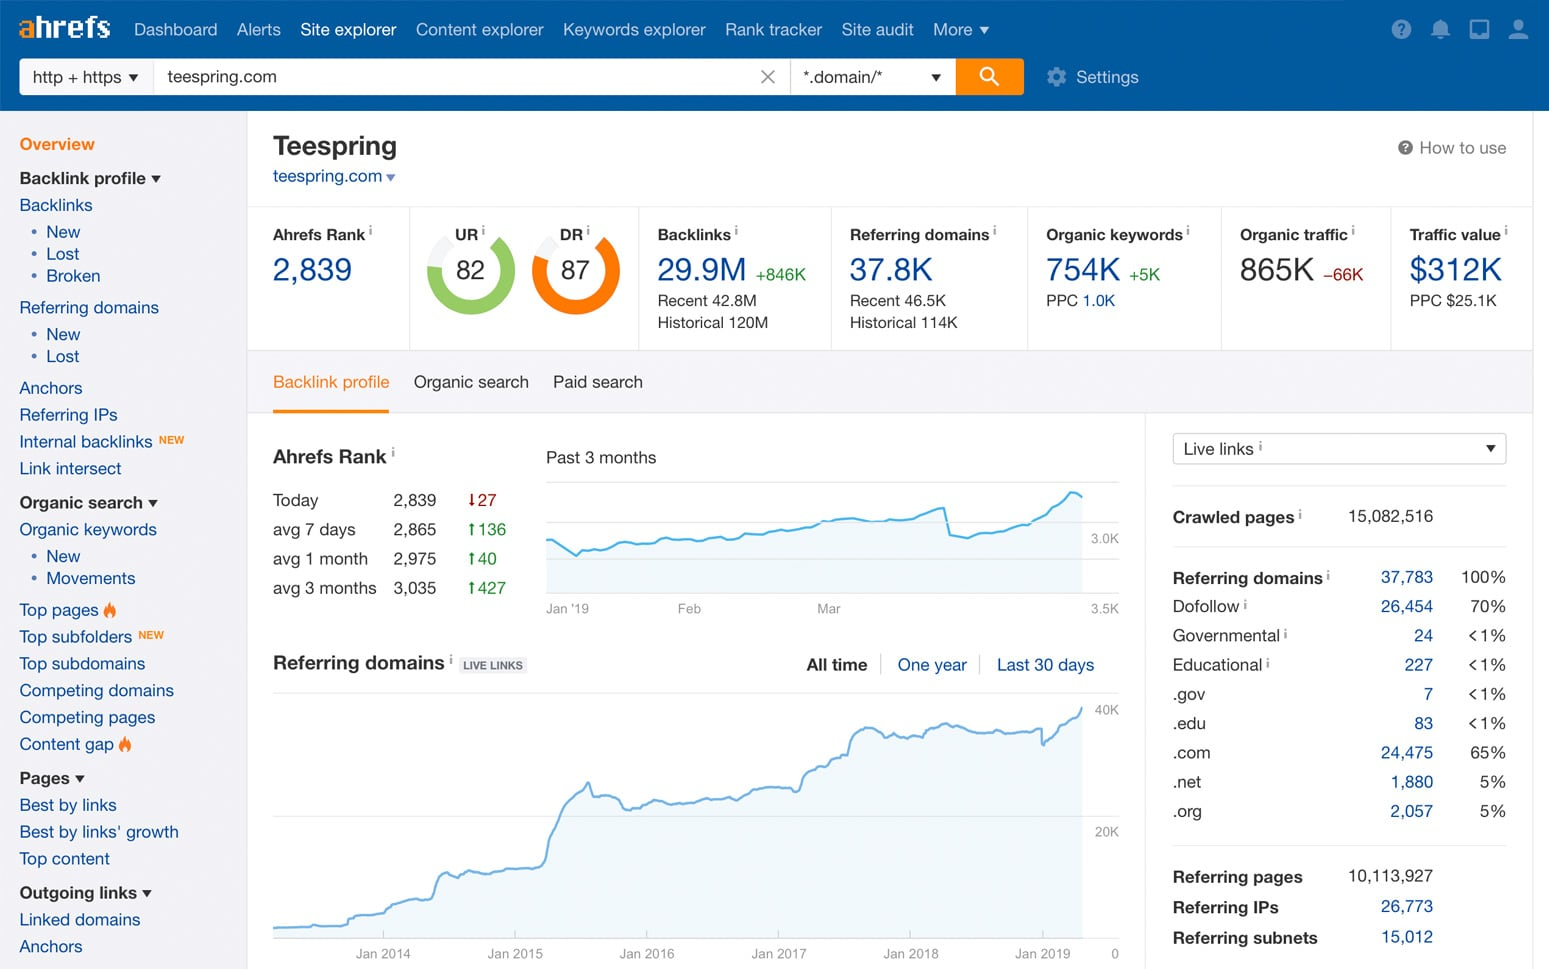 ahrefs dashboard mainscreen